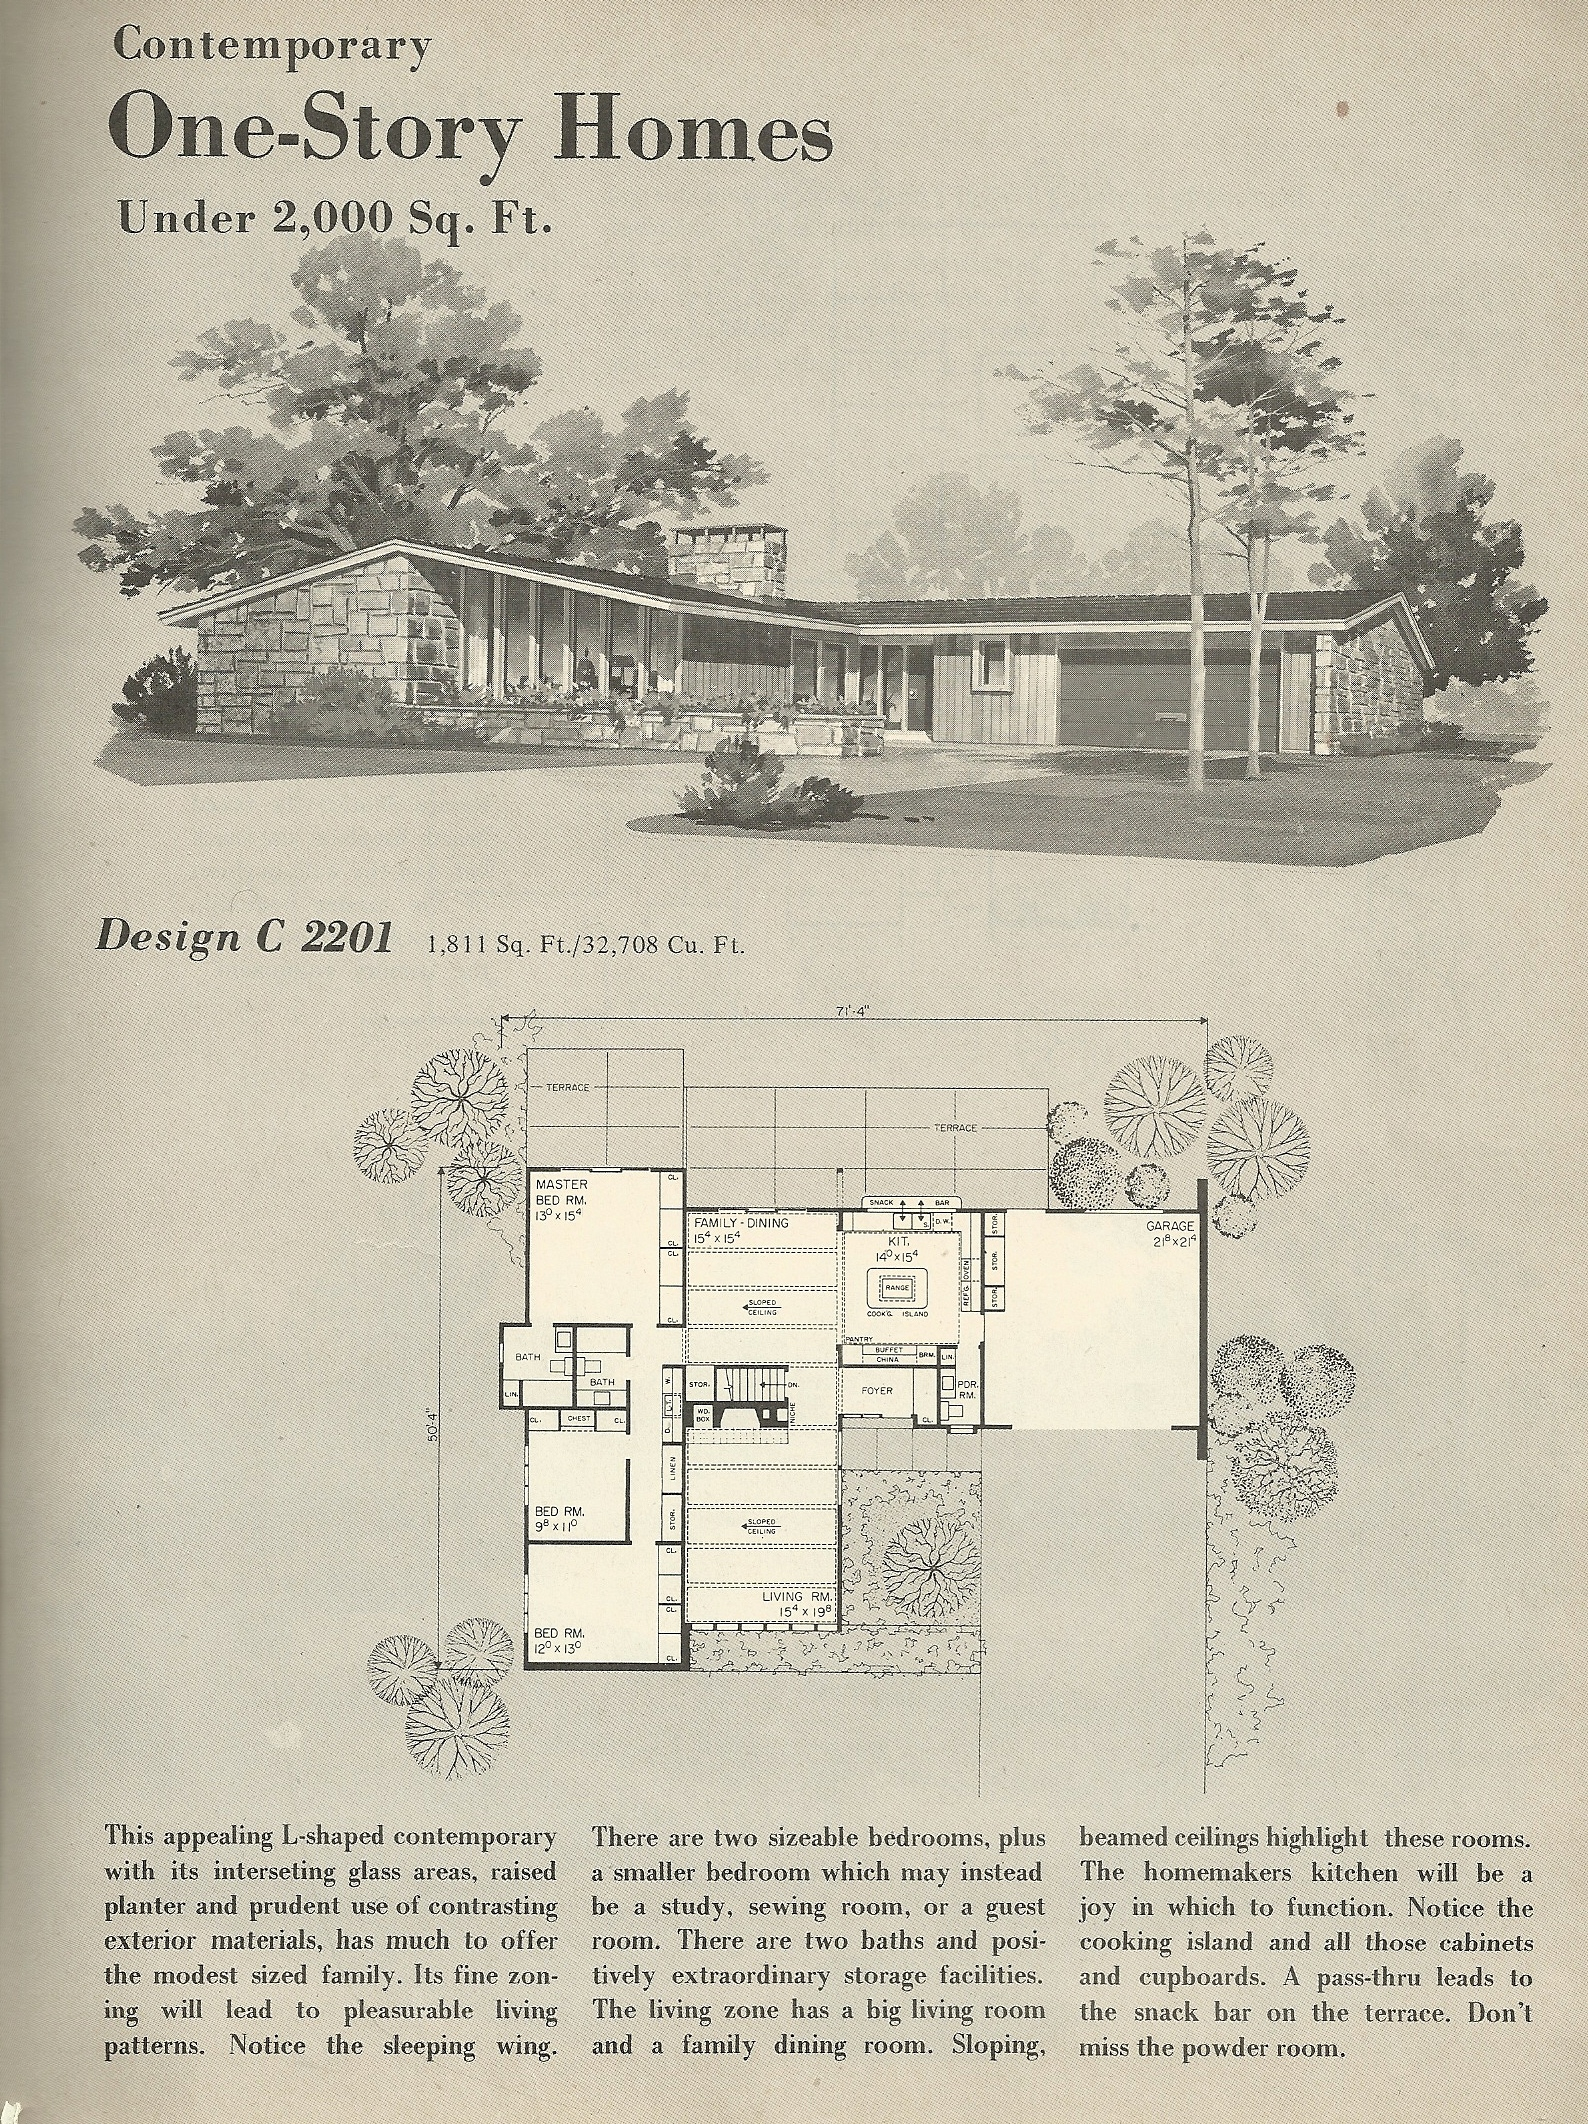 Vintage house plans 2201 antique alter ego for Mid century modern home floor plans